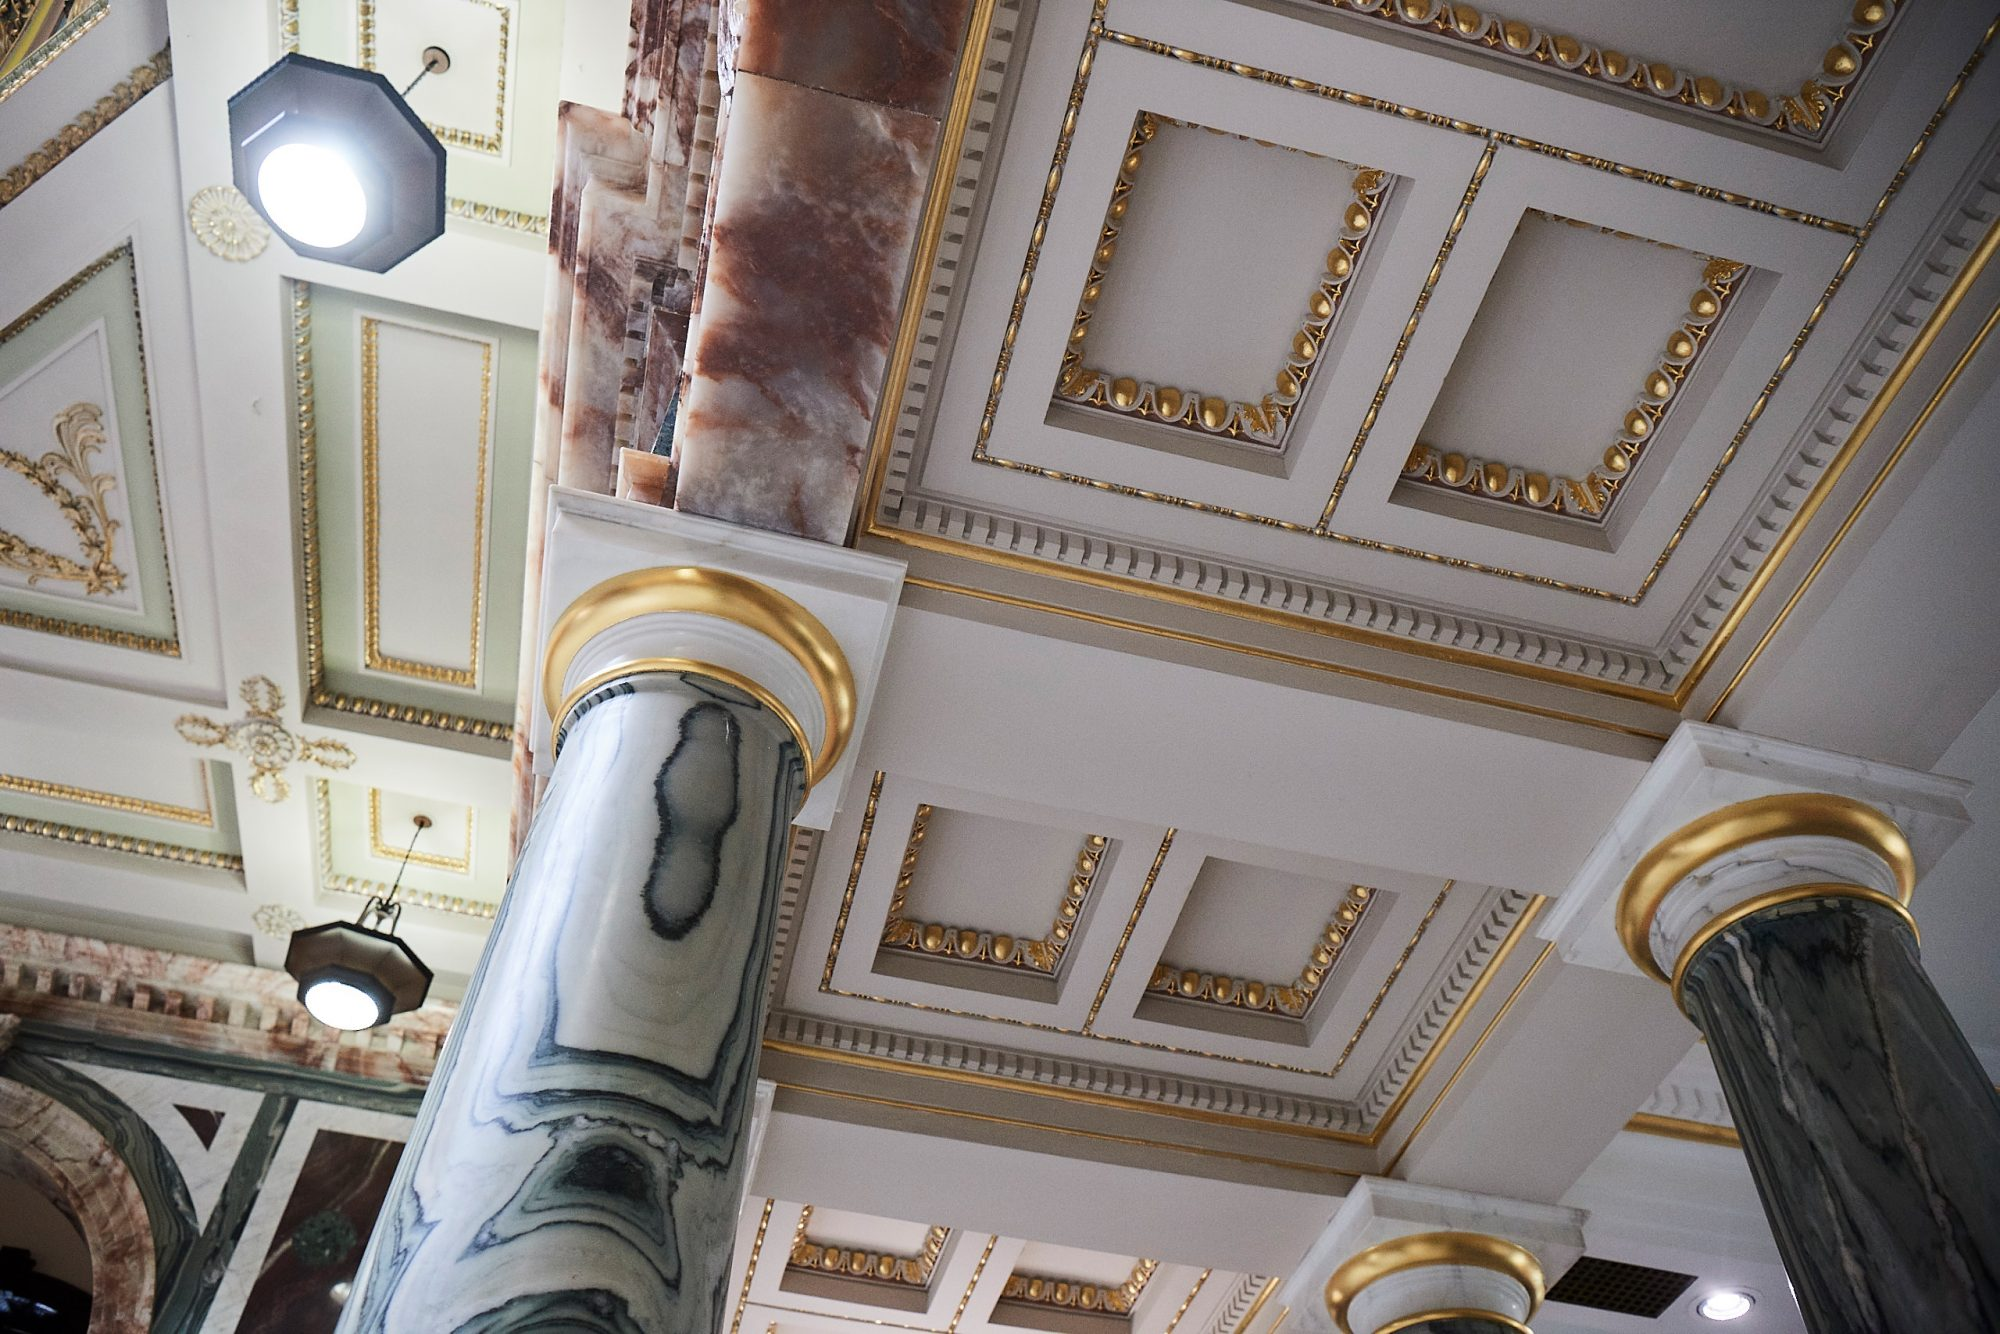 Pillar and intricate ceiling detail of the Marble Hall, Norwich